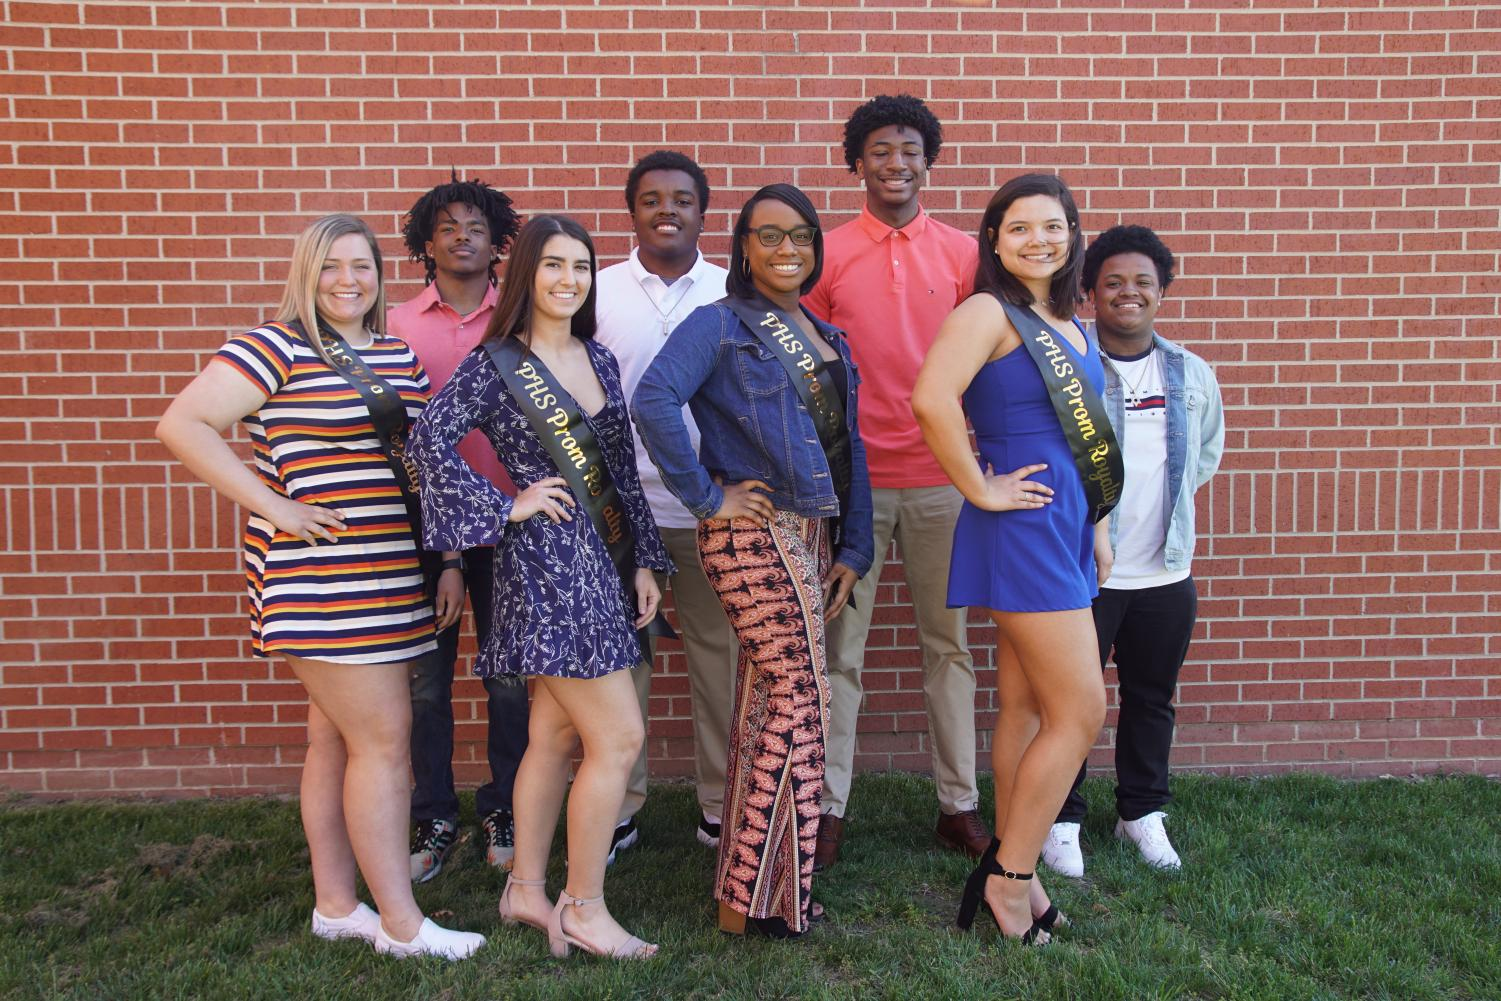 2019 prom candidates Back row (left to right): Devon Marshall, Brandon Walker, Brandan Jackson and Alonzo Wright Front row (left to right): Marilynn Buff, Hannah Pappert, Erika Ewell and Savannah Vazquez